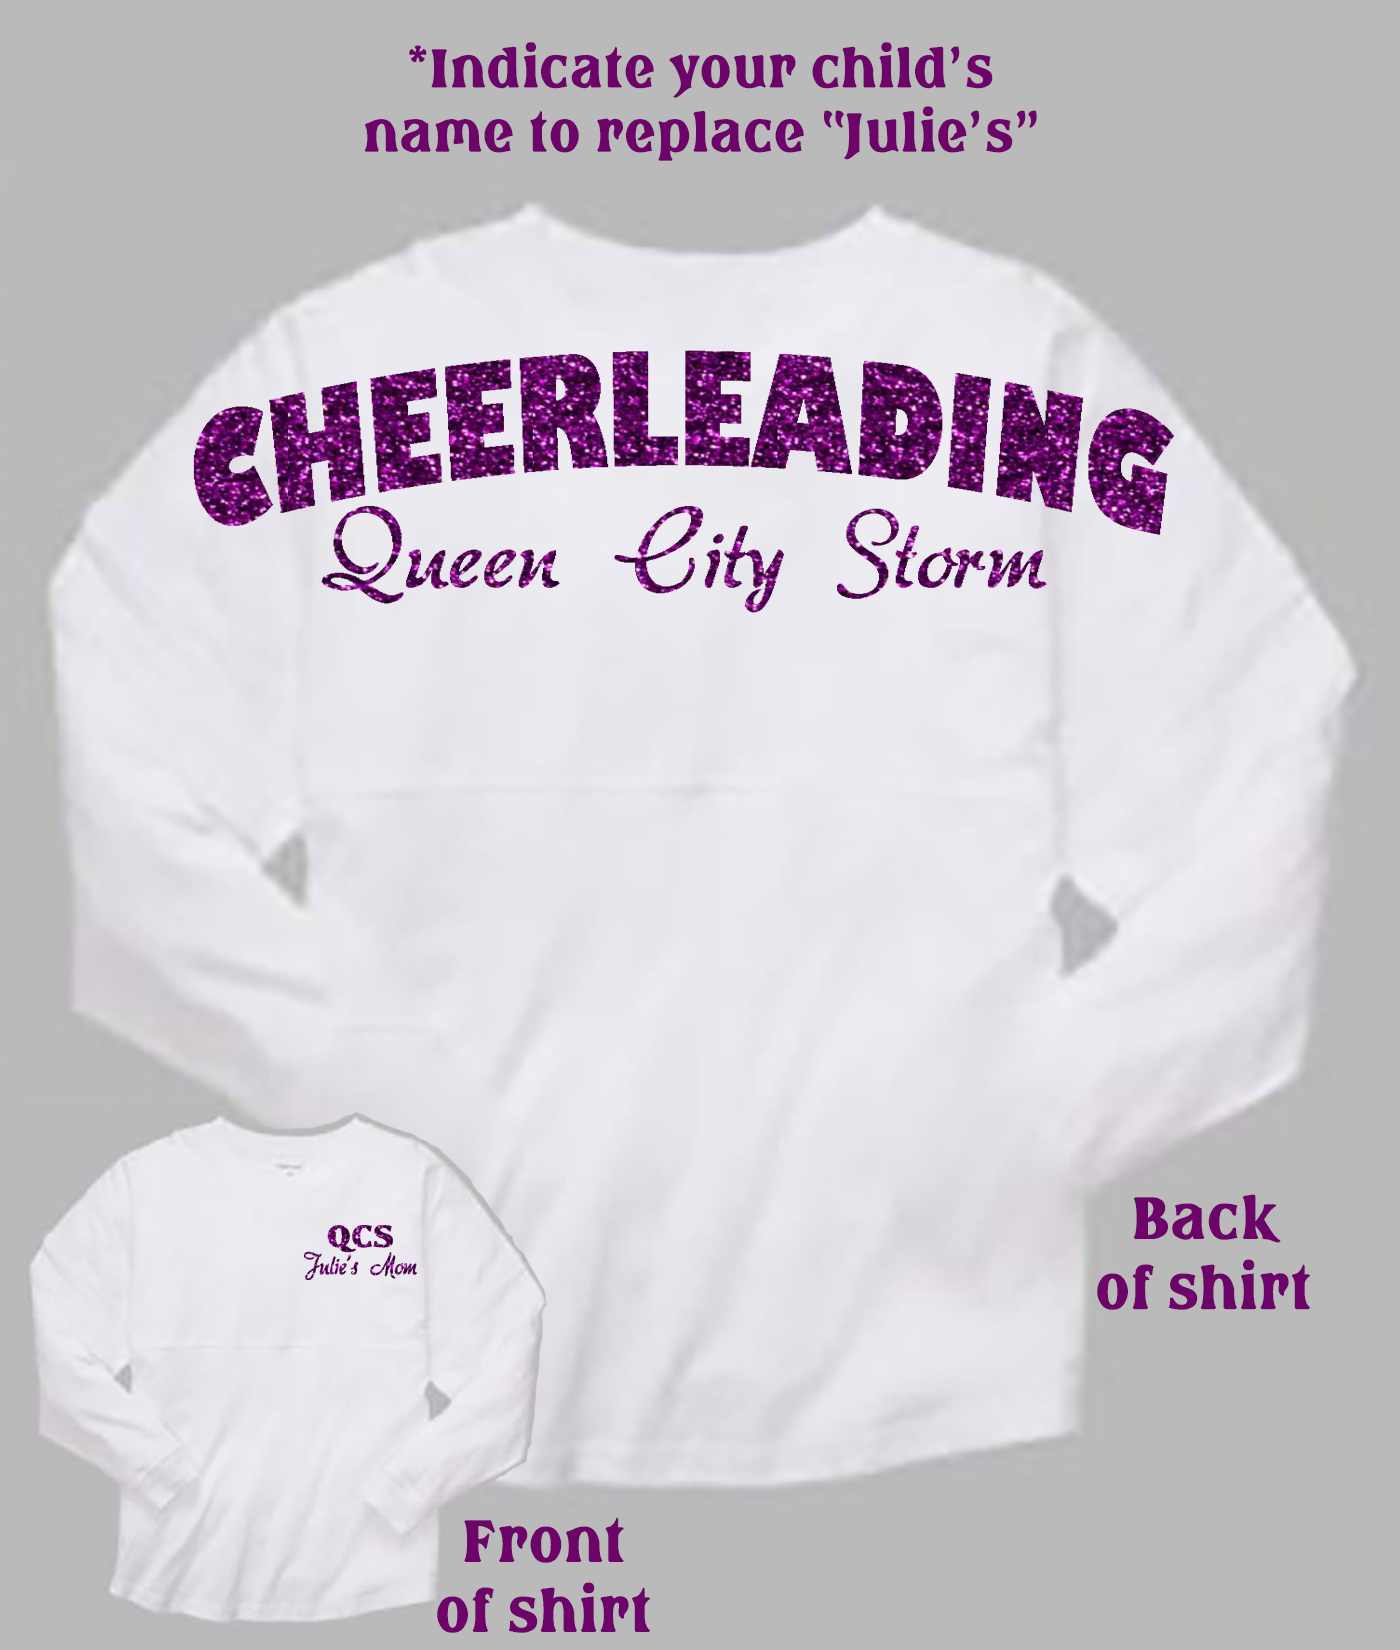 Queen City Cheer with Child's Name Mom White Pom Pom Jersey with Purple Glitter